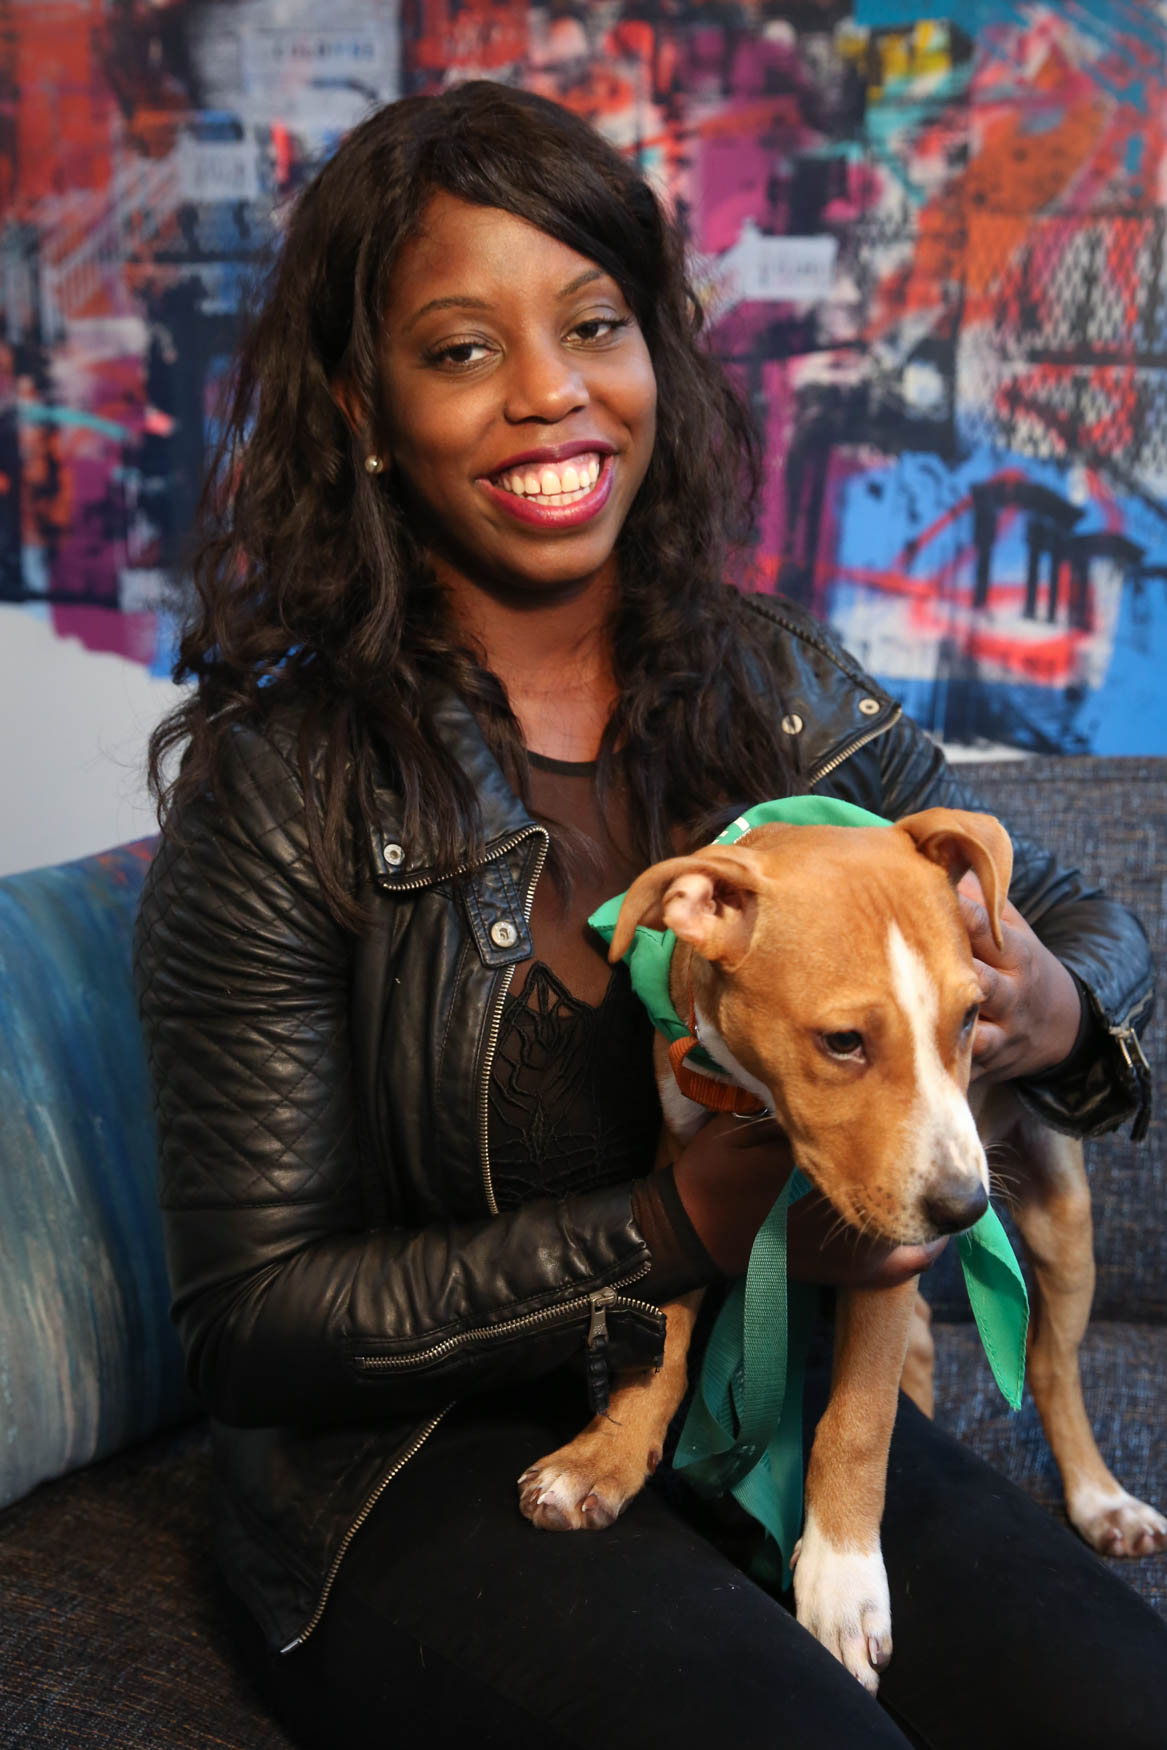 Meet Bali and Danielle, a  3.5-month-old Lab/ Terrier mix and a 28-year-old human respectively. Photo location: Moxy Washington, D.C. Downtown (Image: Amanda Andrade-Rhoades/ DC Refined)